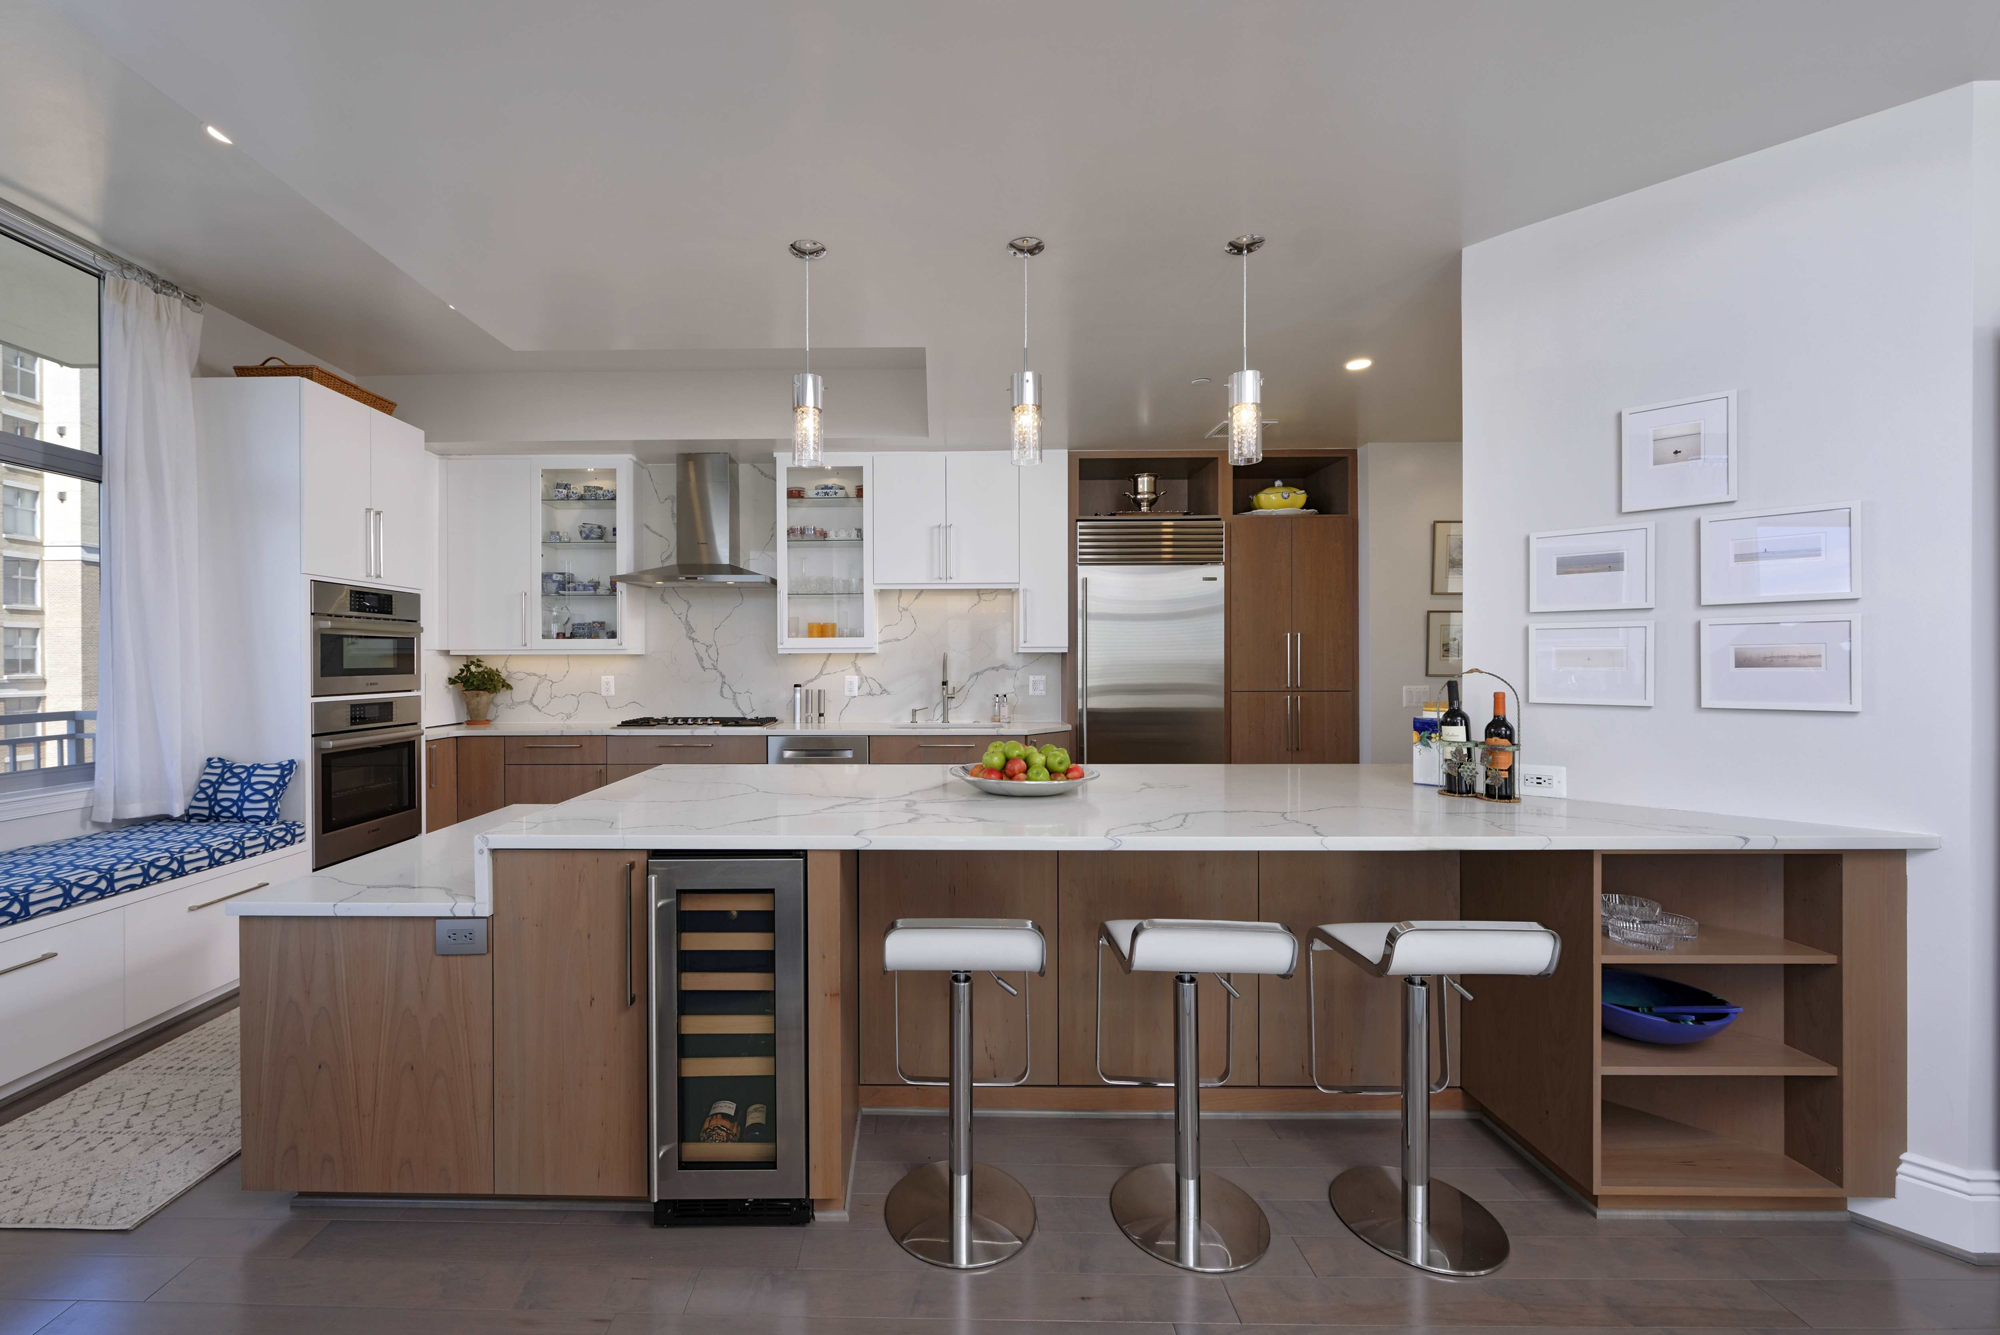 Please Sit Back Relax And Enjoy Perusing This Gallery Of Our Recent Kitchen Breakfast Room Dining Projects Wed Love To Hear From You If